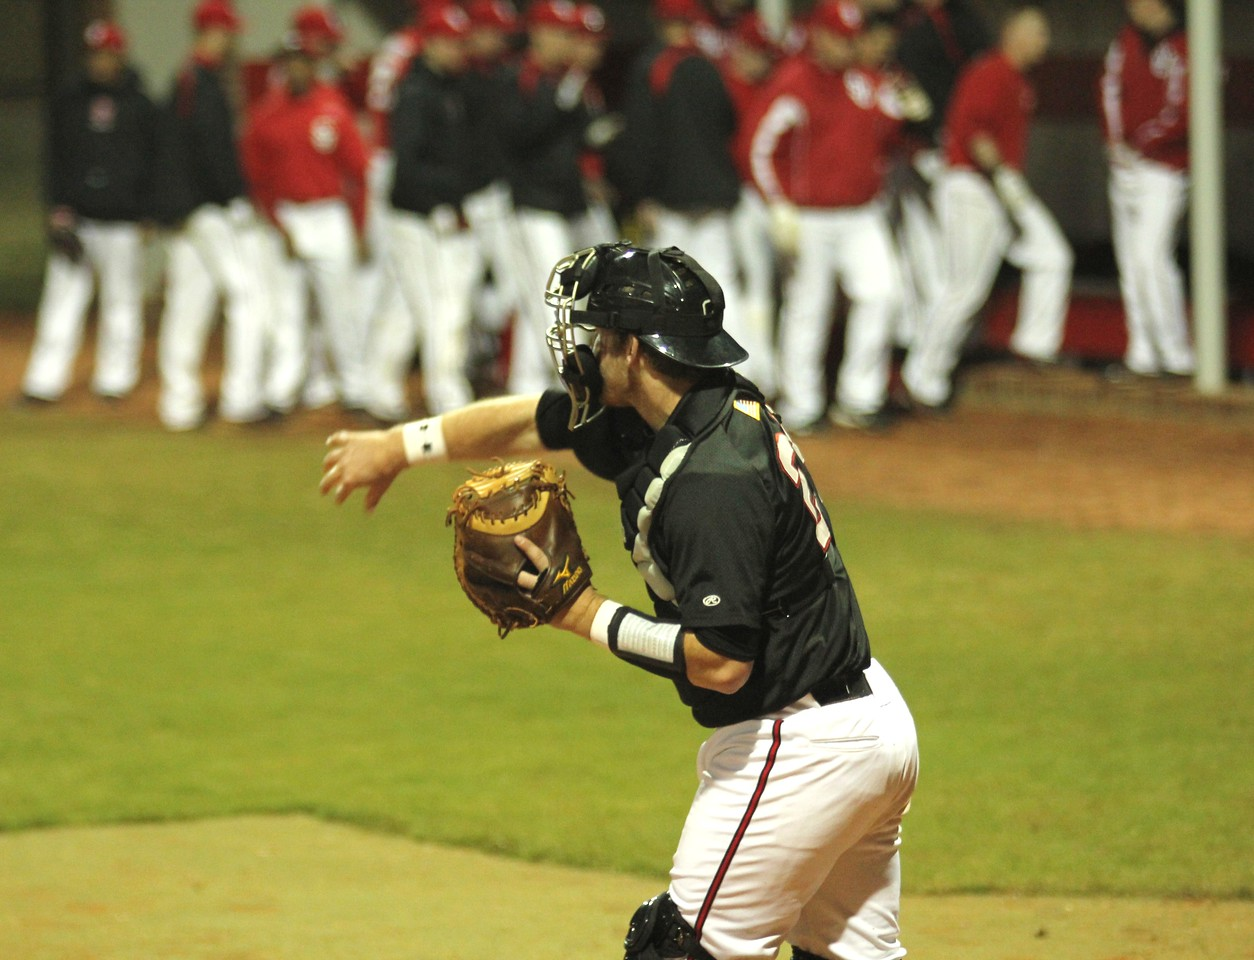 #28 John Harris throws to the pitcher in the first night game to be played at GWU.